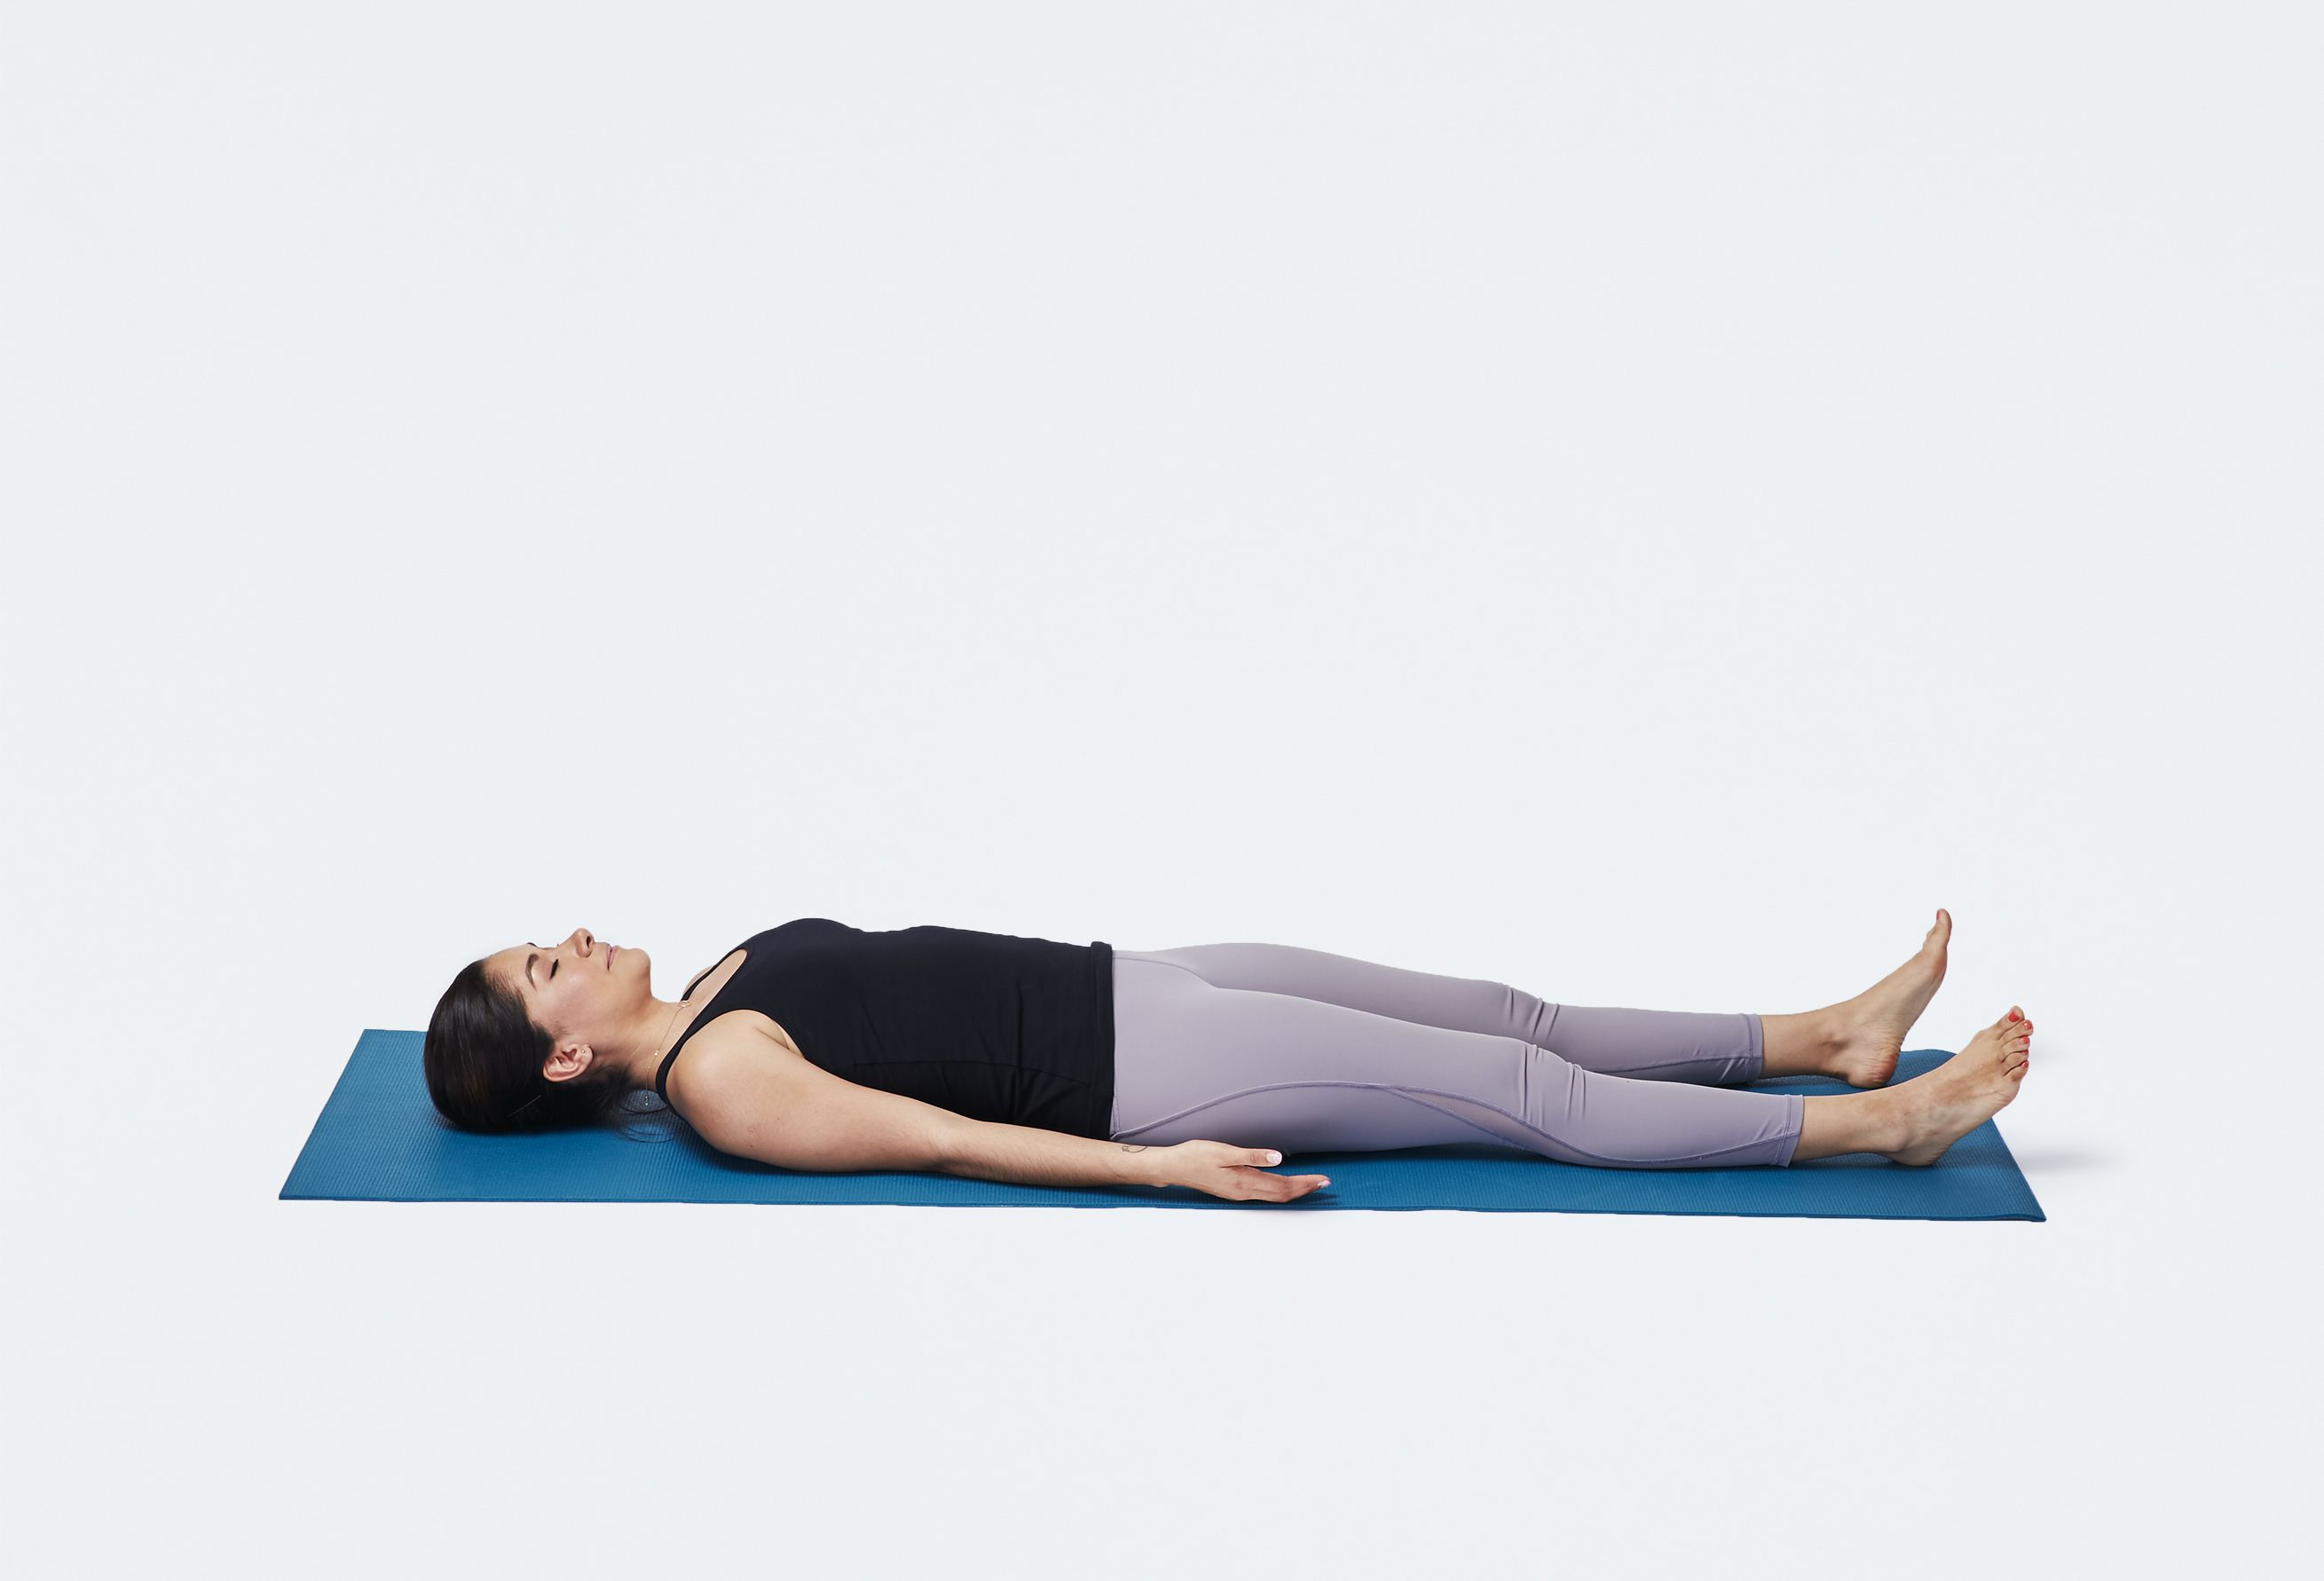 How to Do Corpse Pose (Savasana)